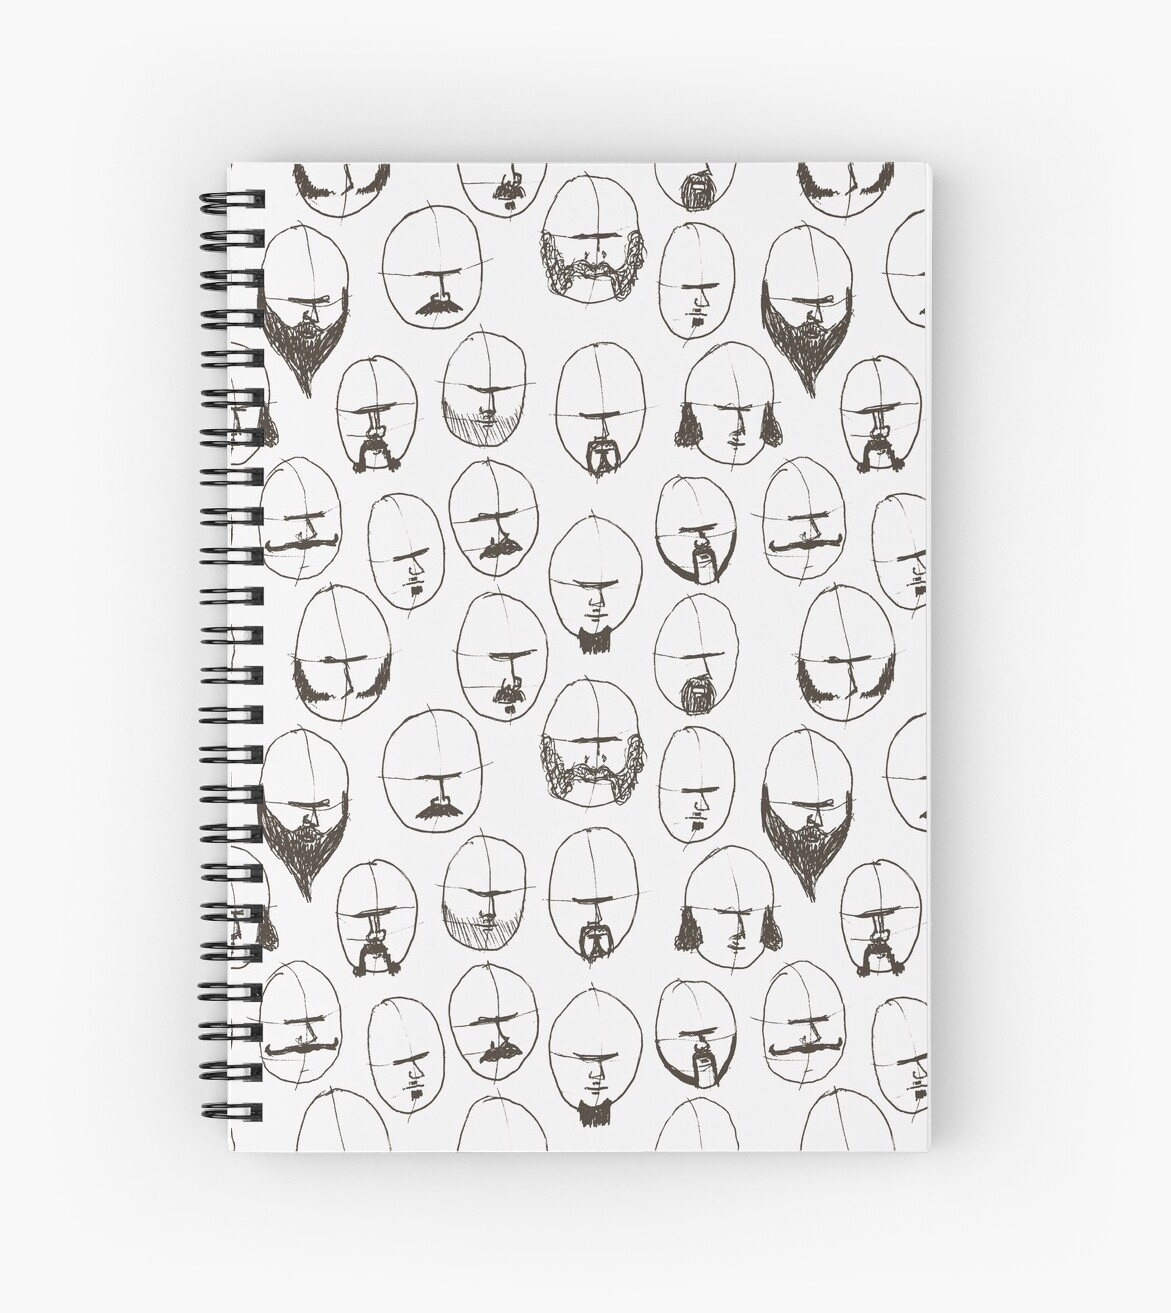 Moustaches and Beards by Matt Andrews